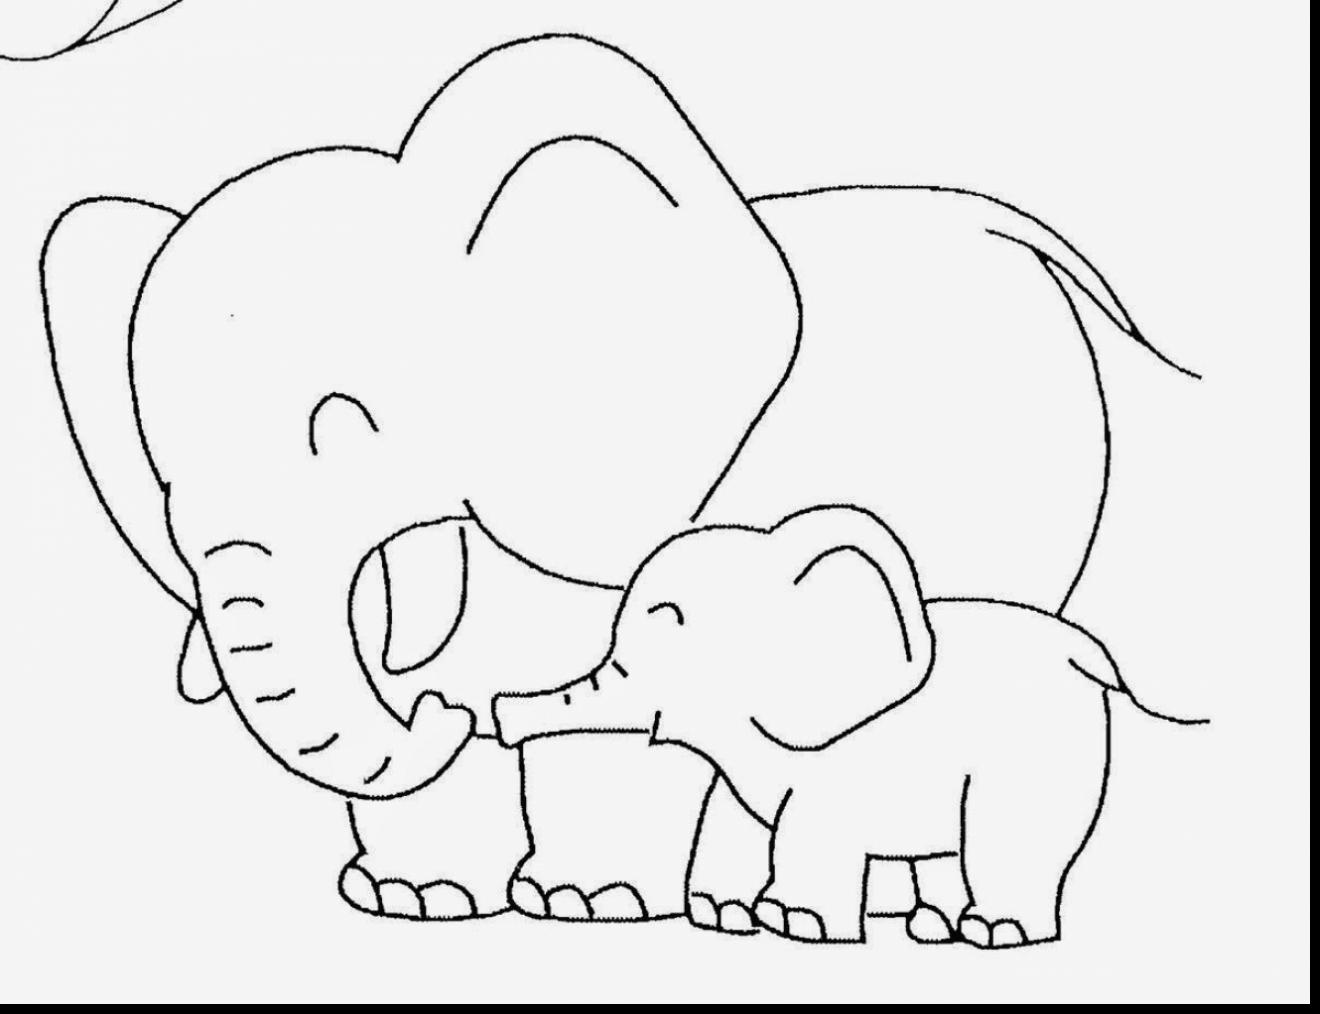 1320x1014 Brilliant Cute Baby Elephant Coloring Pages With Animal